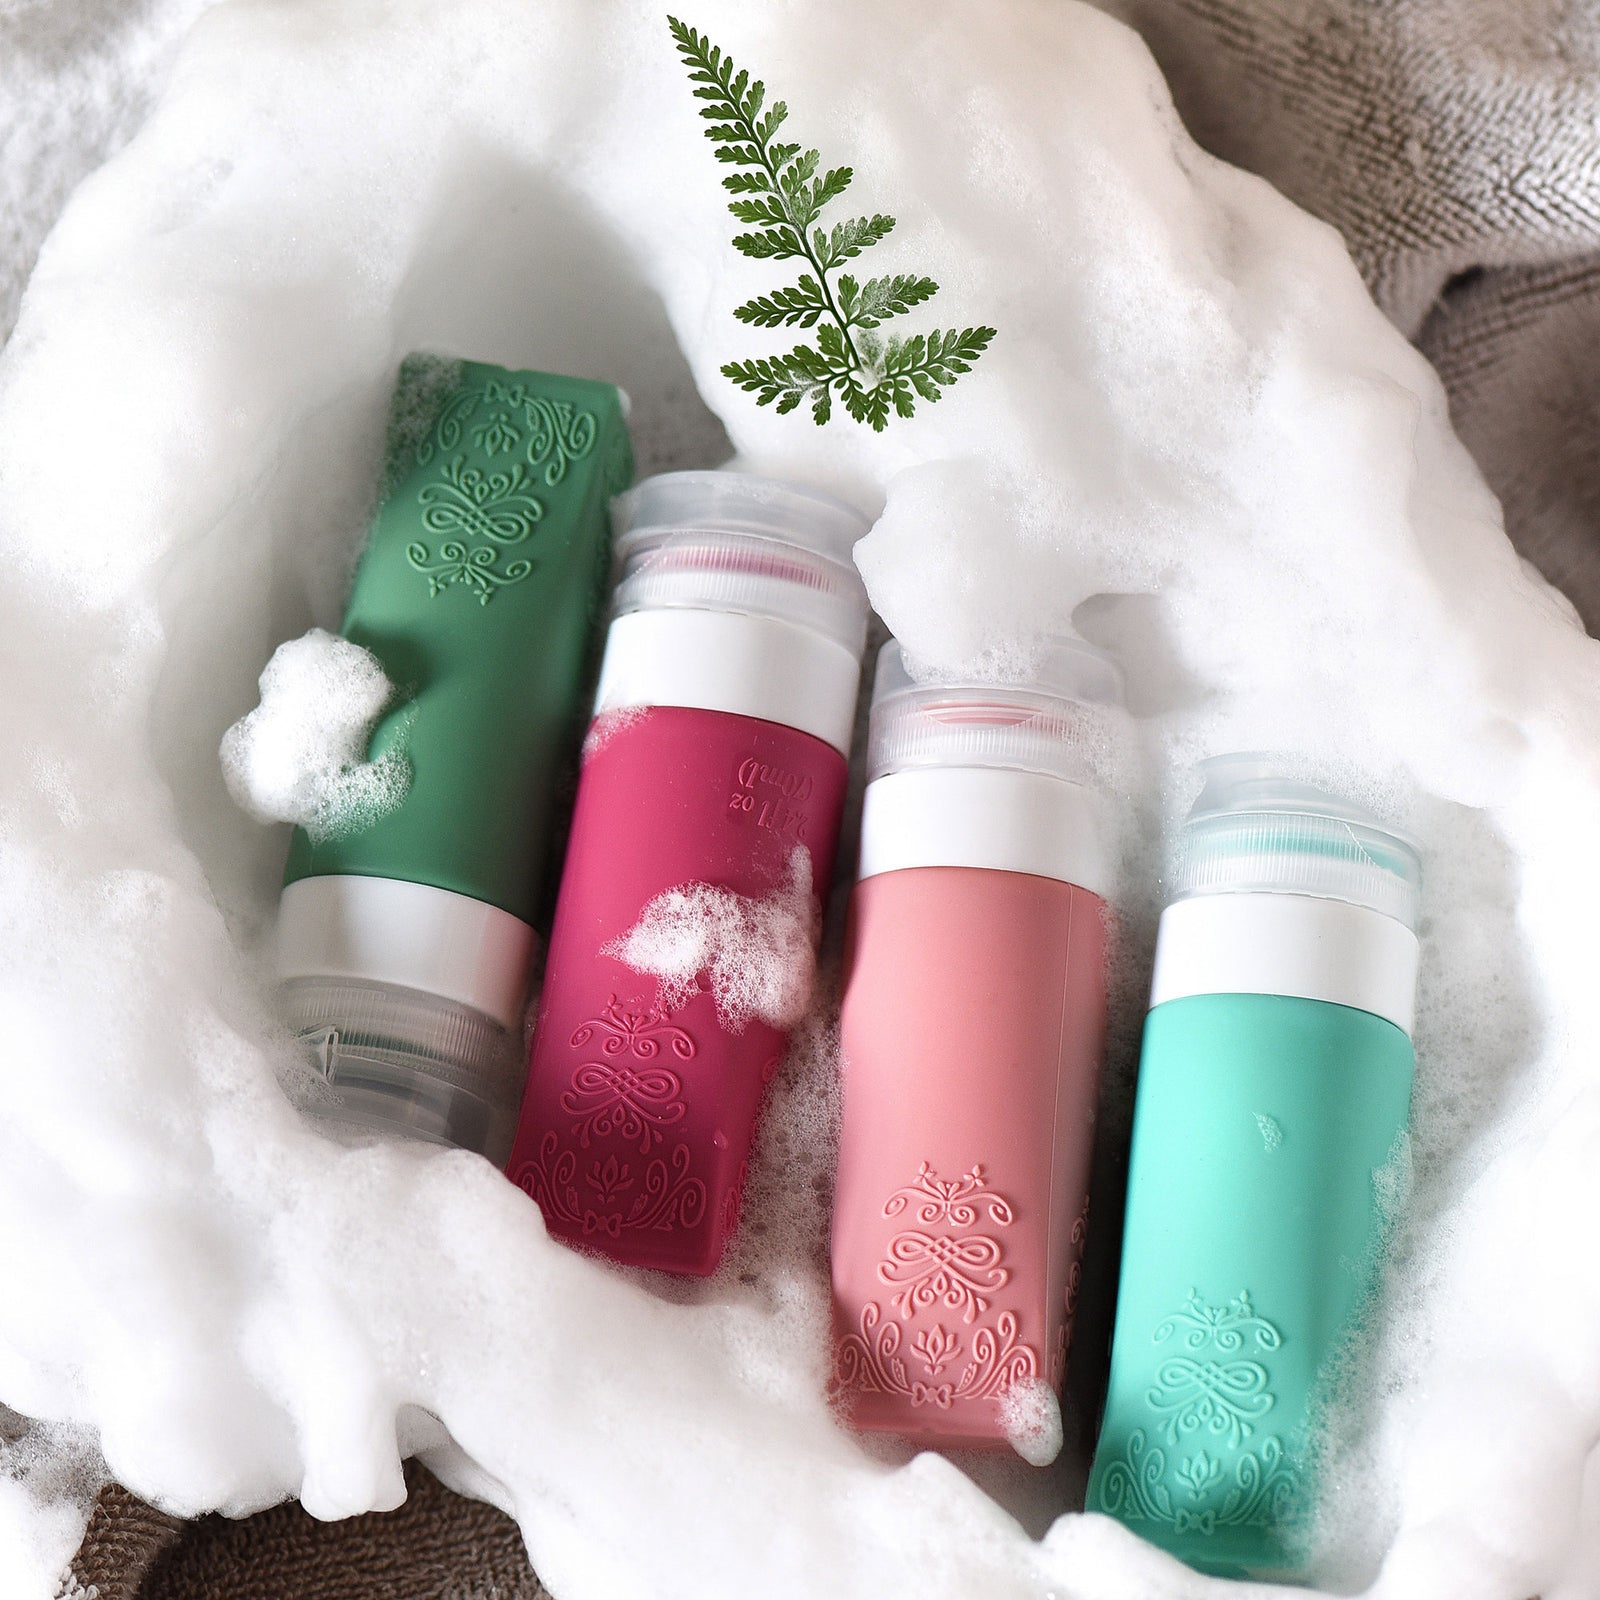 FiveSeasonStuff TSA Approved Silicone Leak Proof Travel Squeeze Bottles and Travel Spray Bottle with TSA Toiletry Bag (7 Pack)Summer Party (Aqua Green, Wild Pink, Forest Green & Cerise Pink) Vintage Series